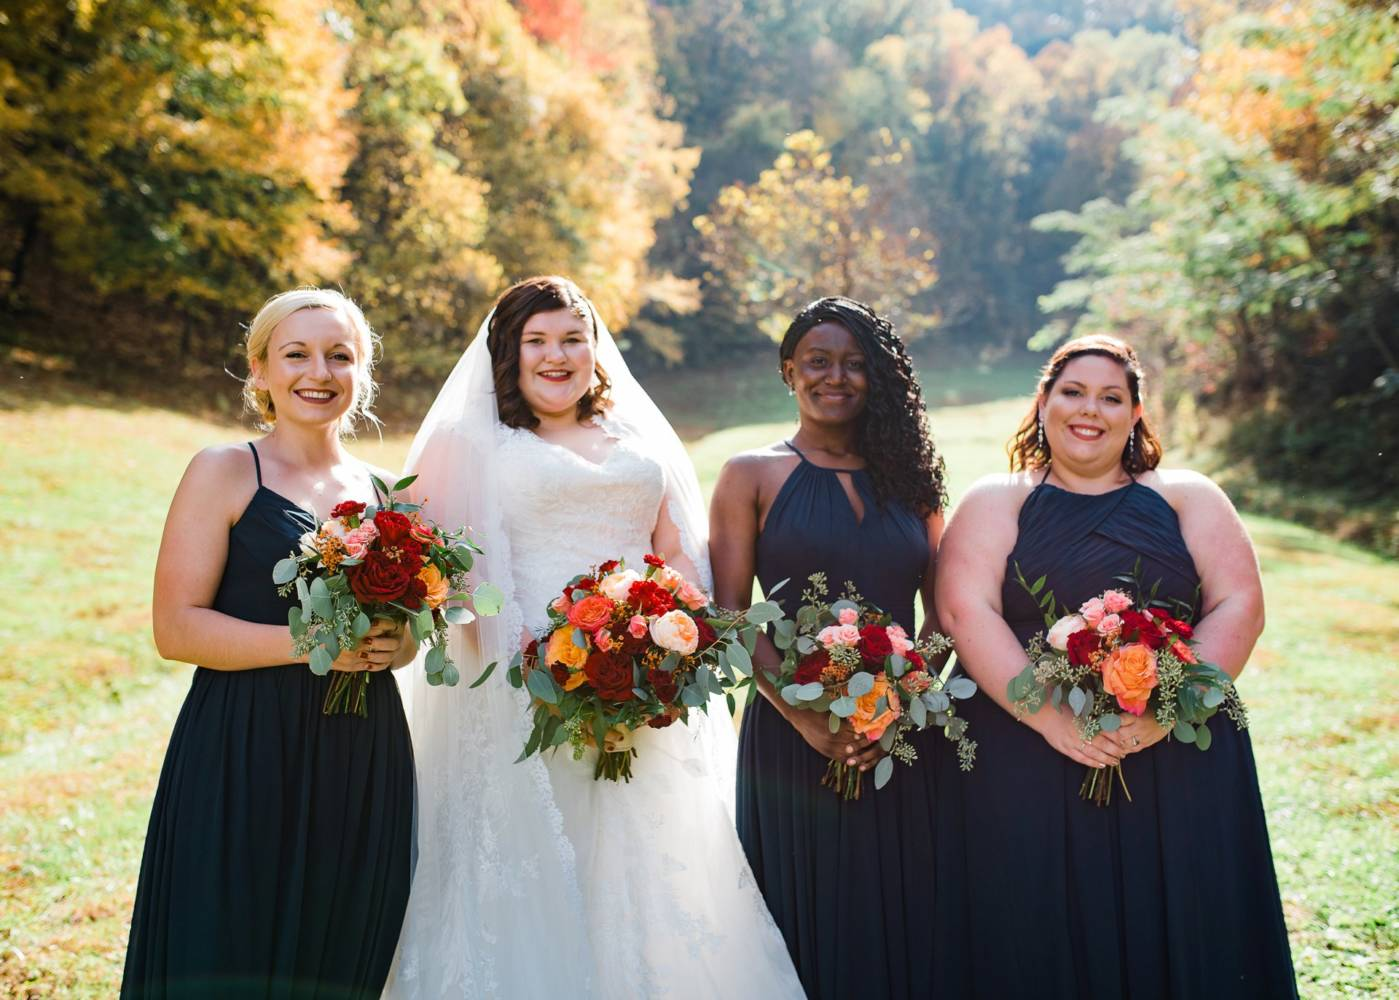 Autumn wedding bride and bridesmaids